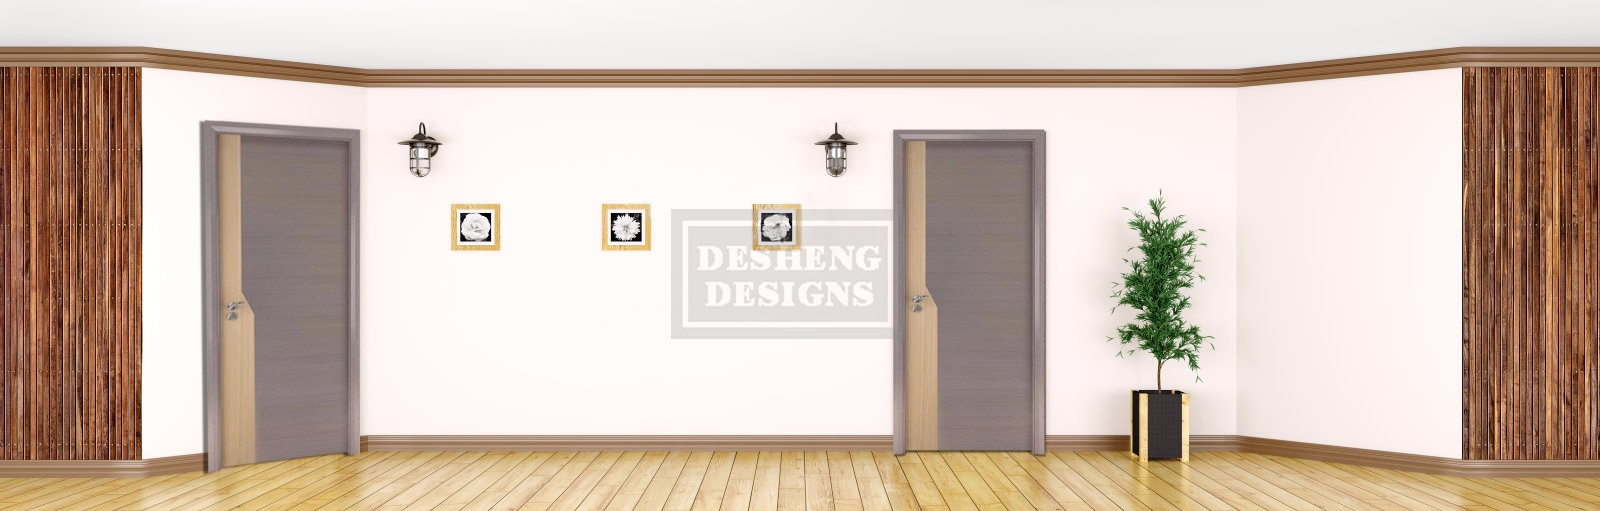 Desheng Wood Industry-Find Door Skin Plywood Seamless Stitching 3d Twilled Wood Grain Laminated-12